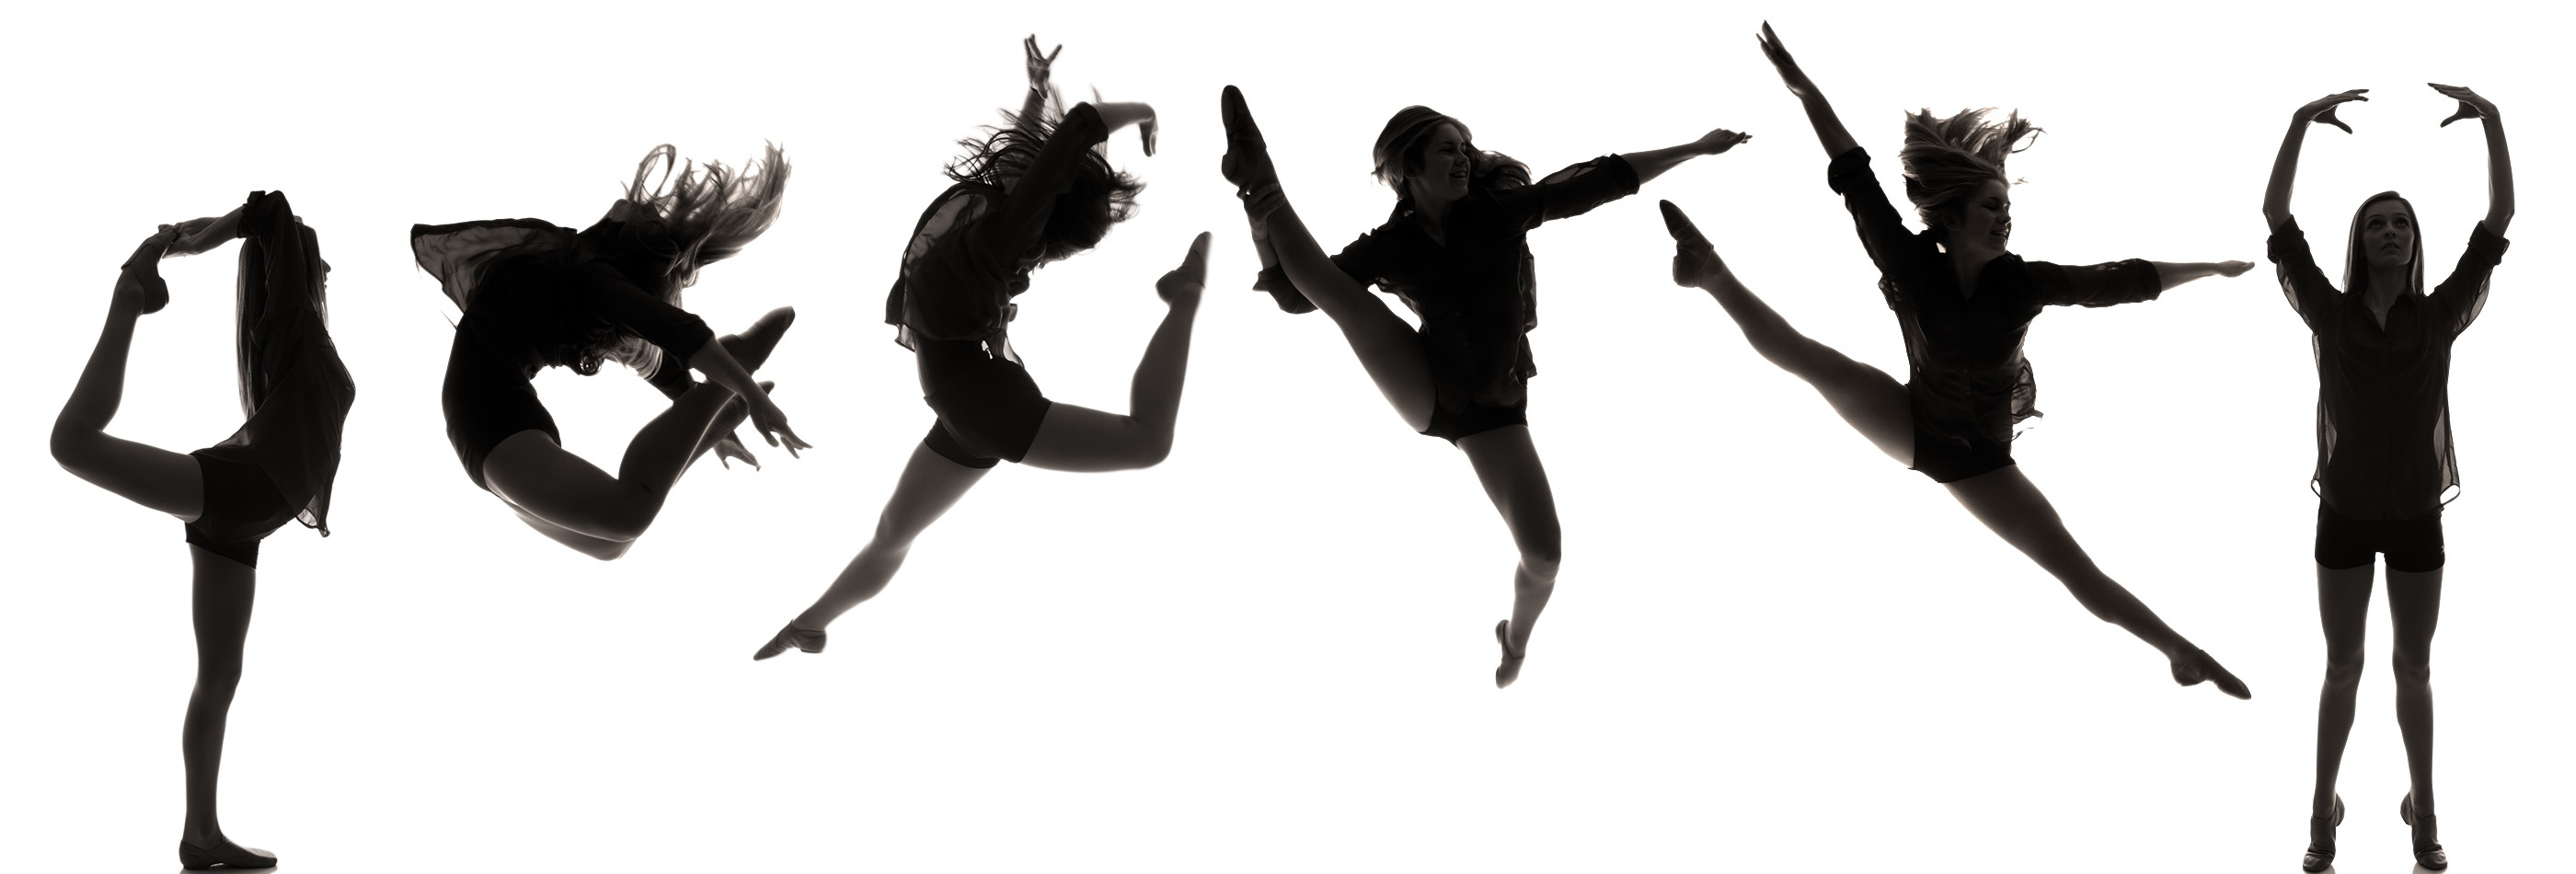 Dance silhouette photography